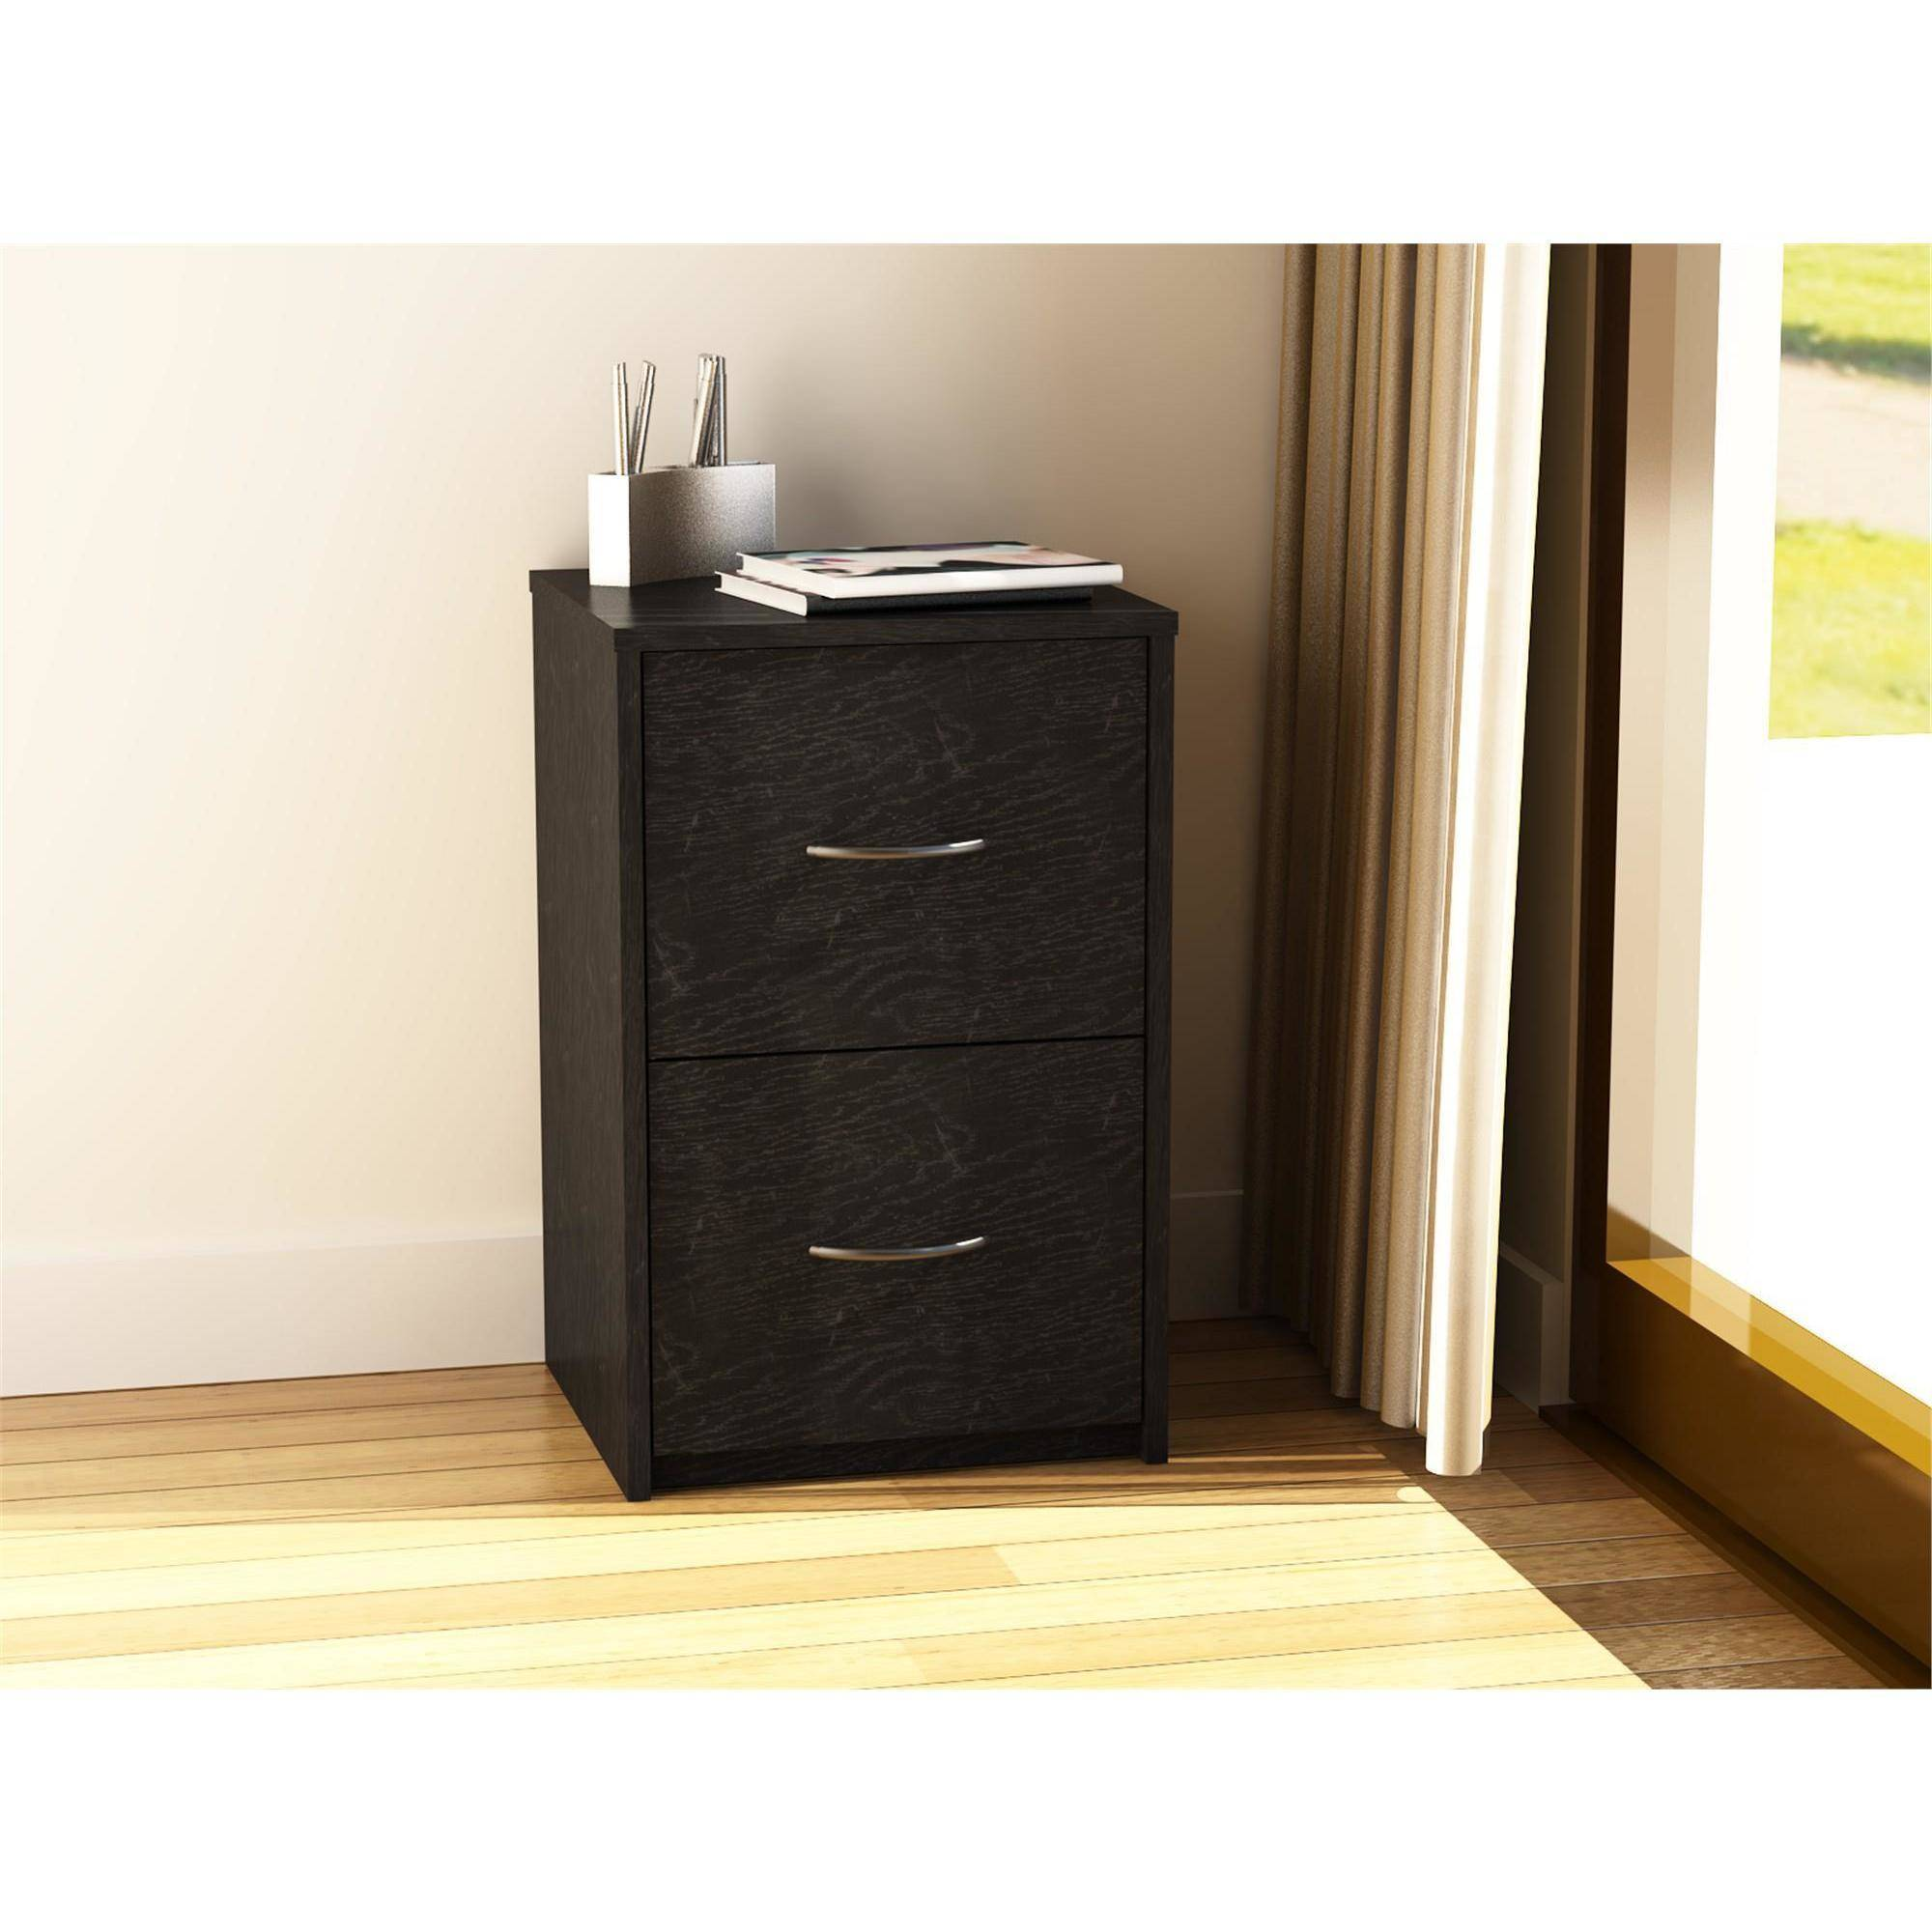 file cabinet multiple finishes - Small Filing Cabinet